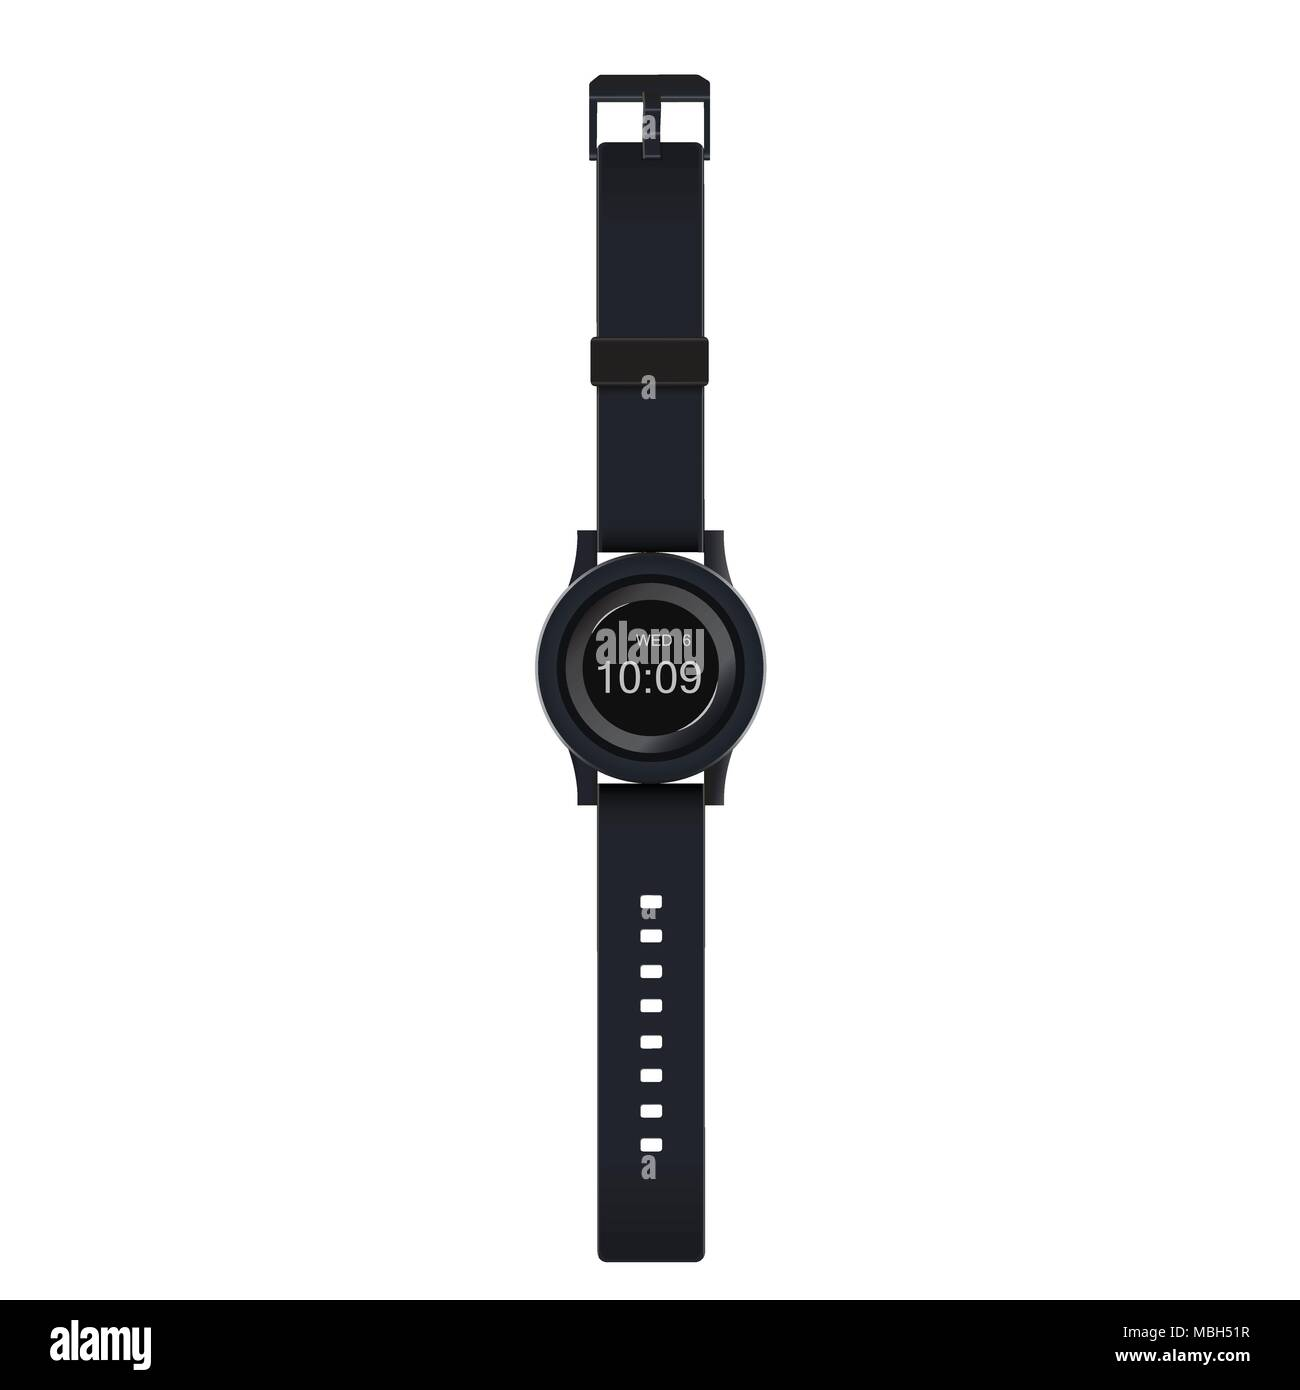 Watch design vector illustration isolated on white background. - Stock Image